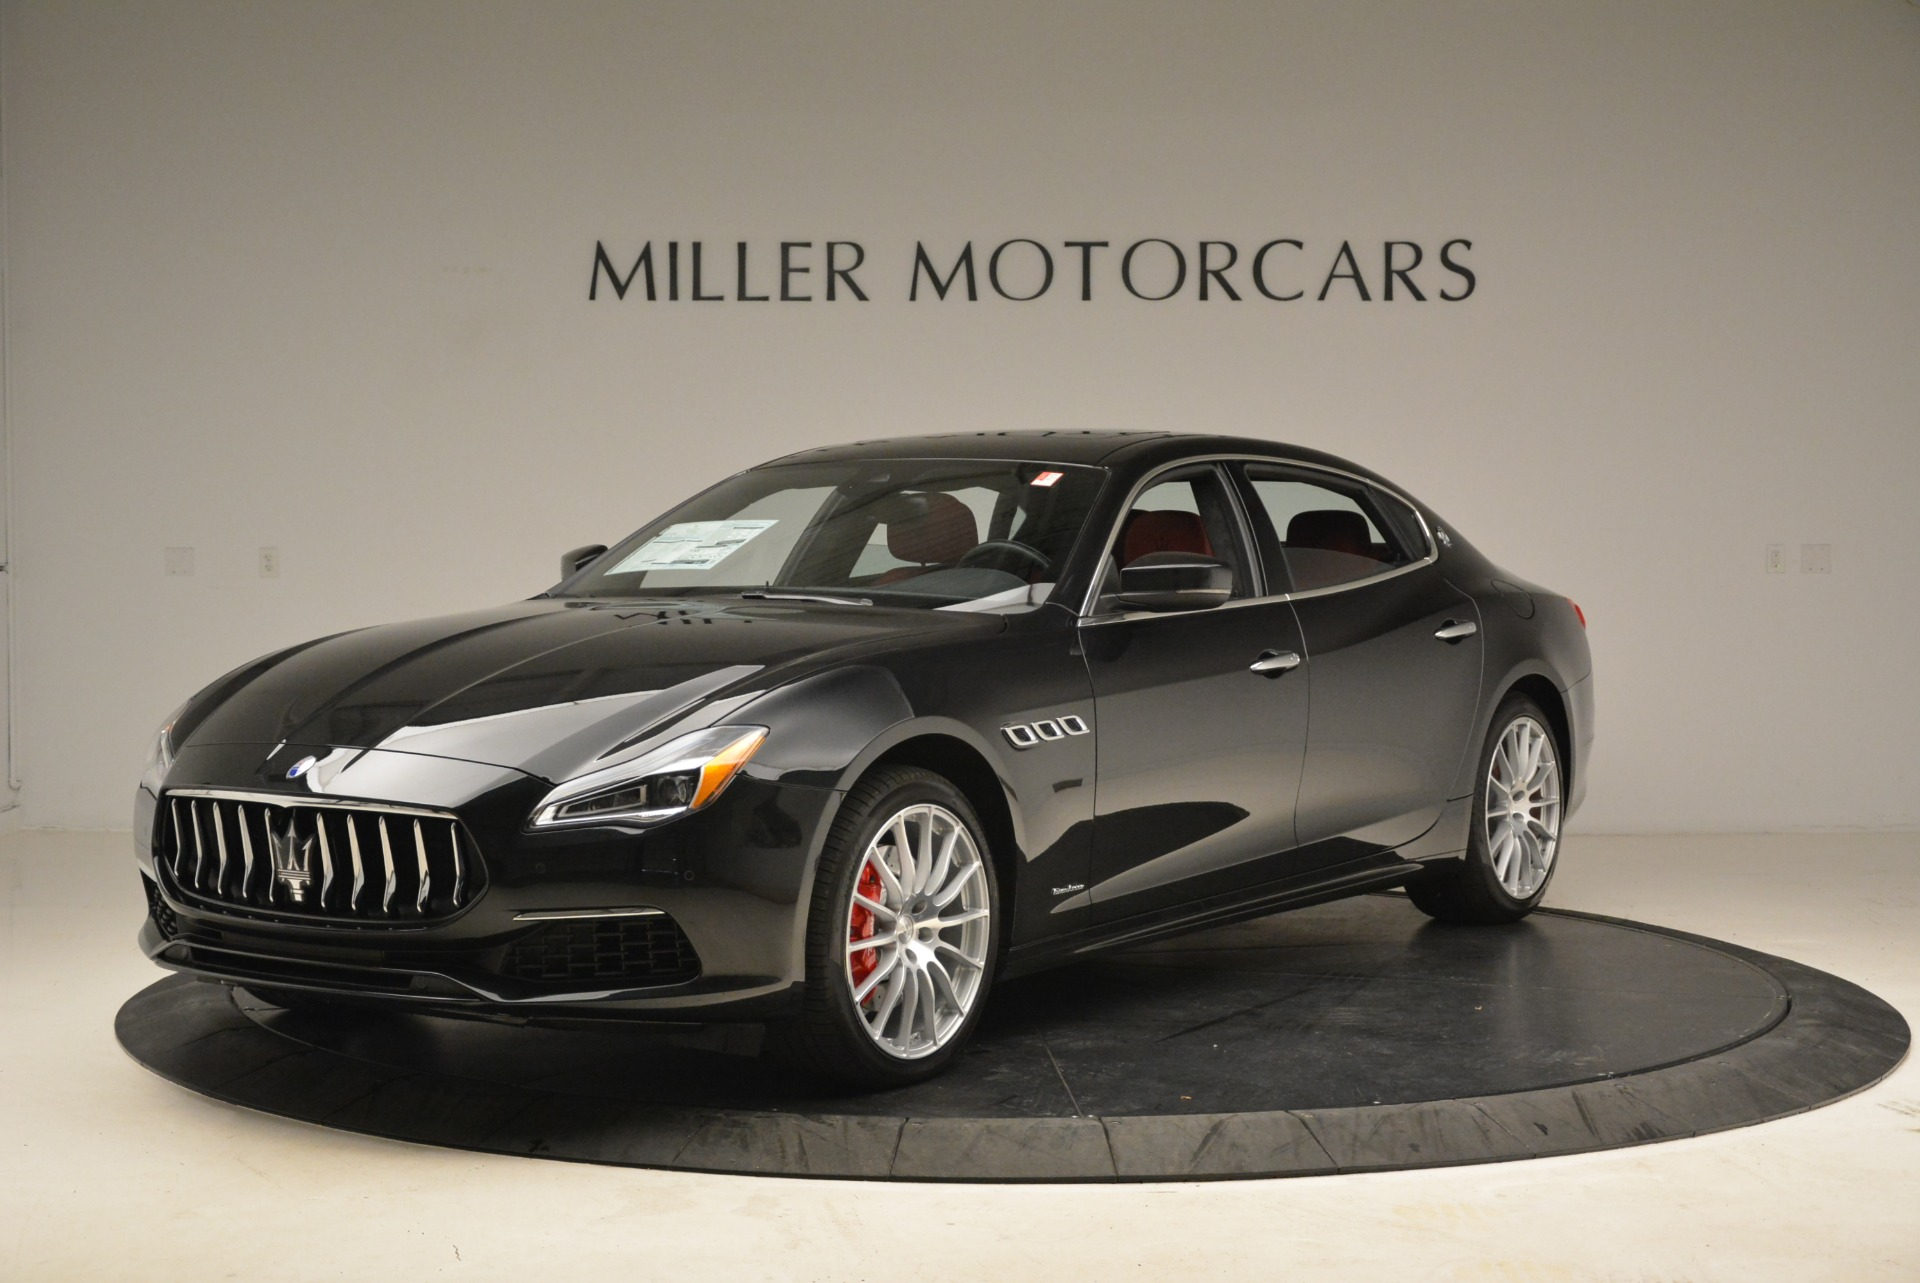 New 2018 Maserati Quattroporte S Q4 GranLusso For Sale In Greenwich, CT 2088_p2